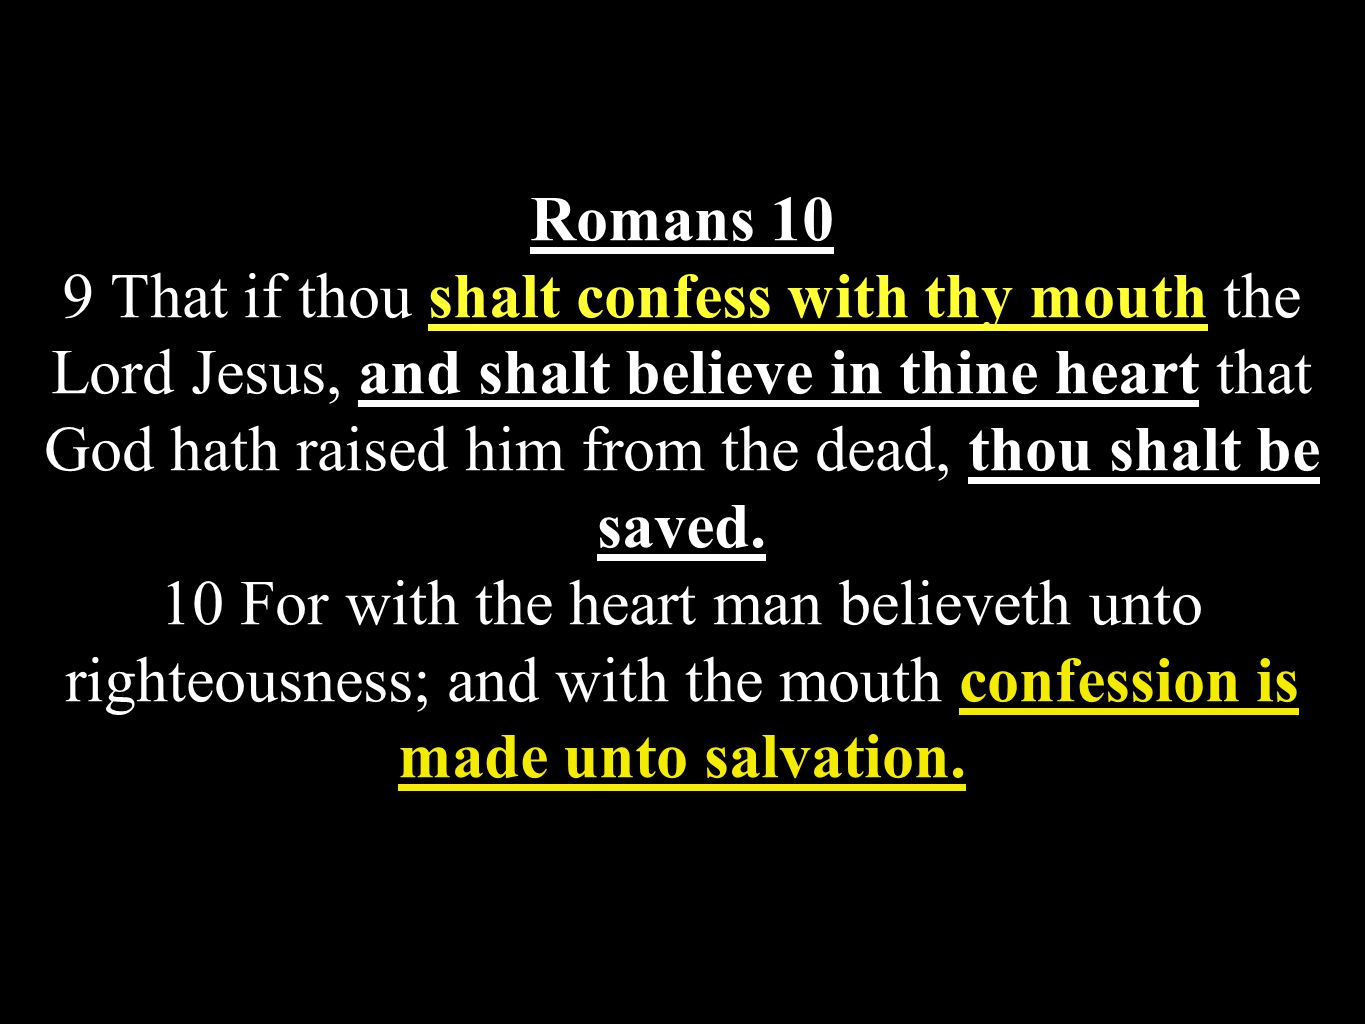 Romans 10 9 That if thou shalt confess with thy mouth the Lord Jesus, and shalt believe in thine heart that God hath raised him from the dead, thou shalt be saved.